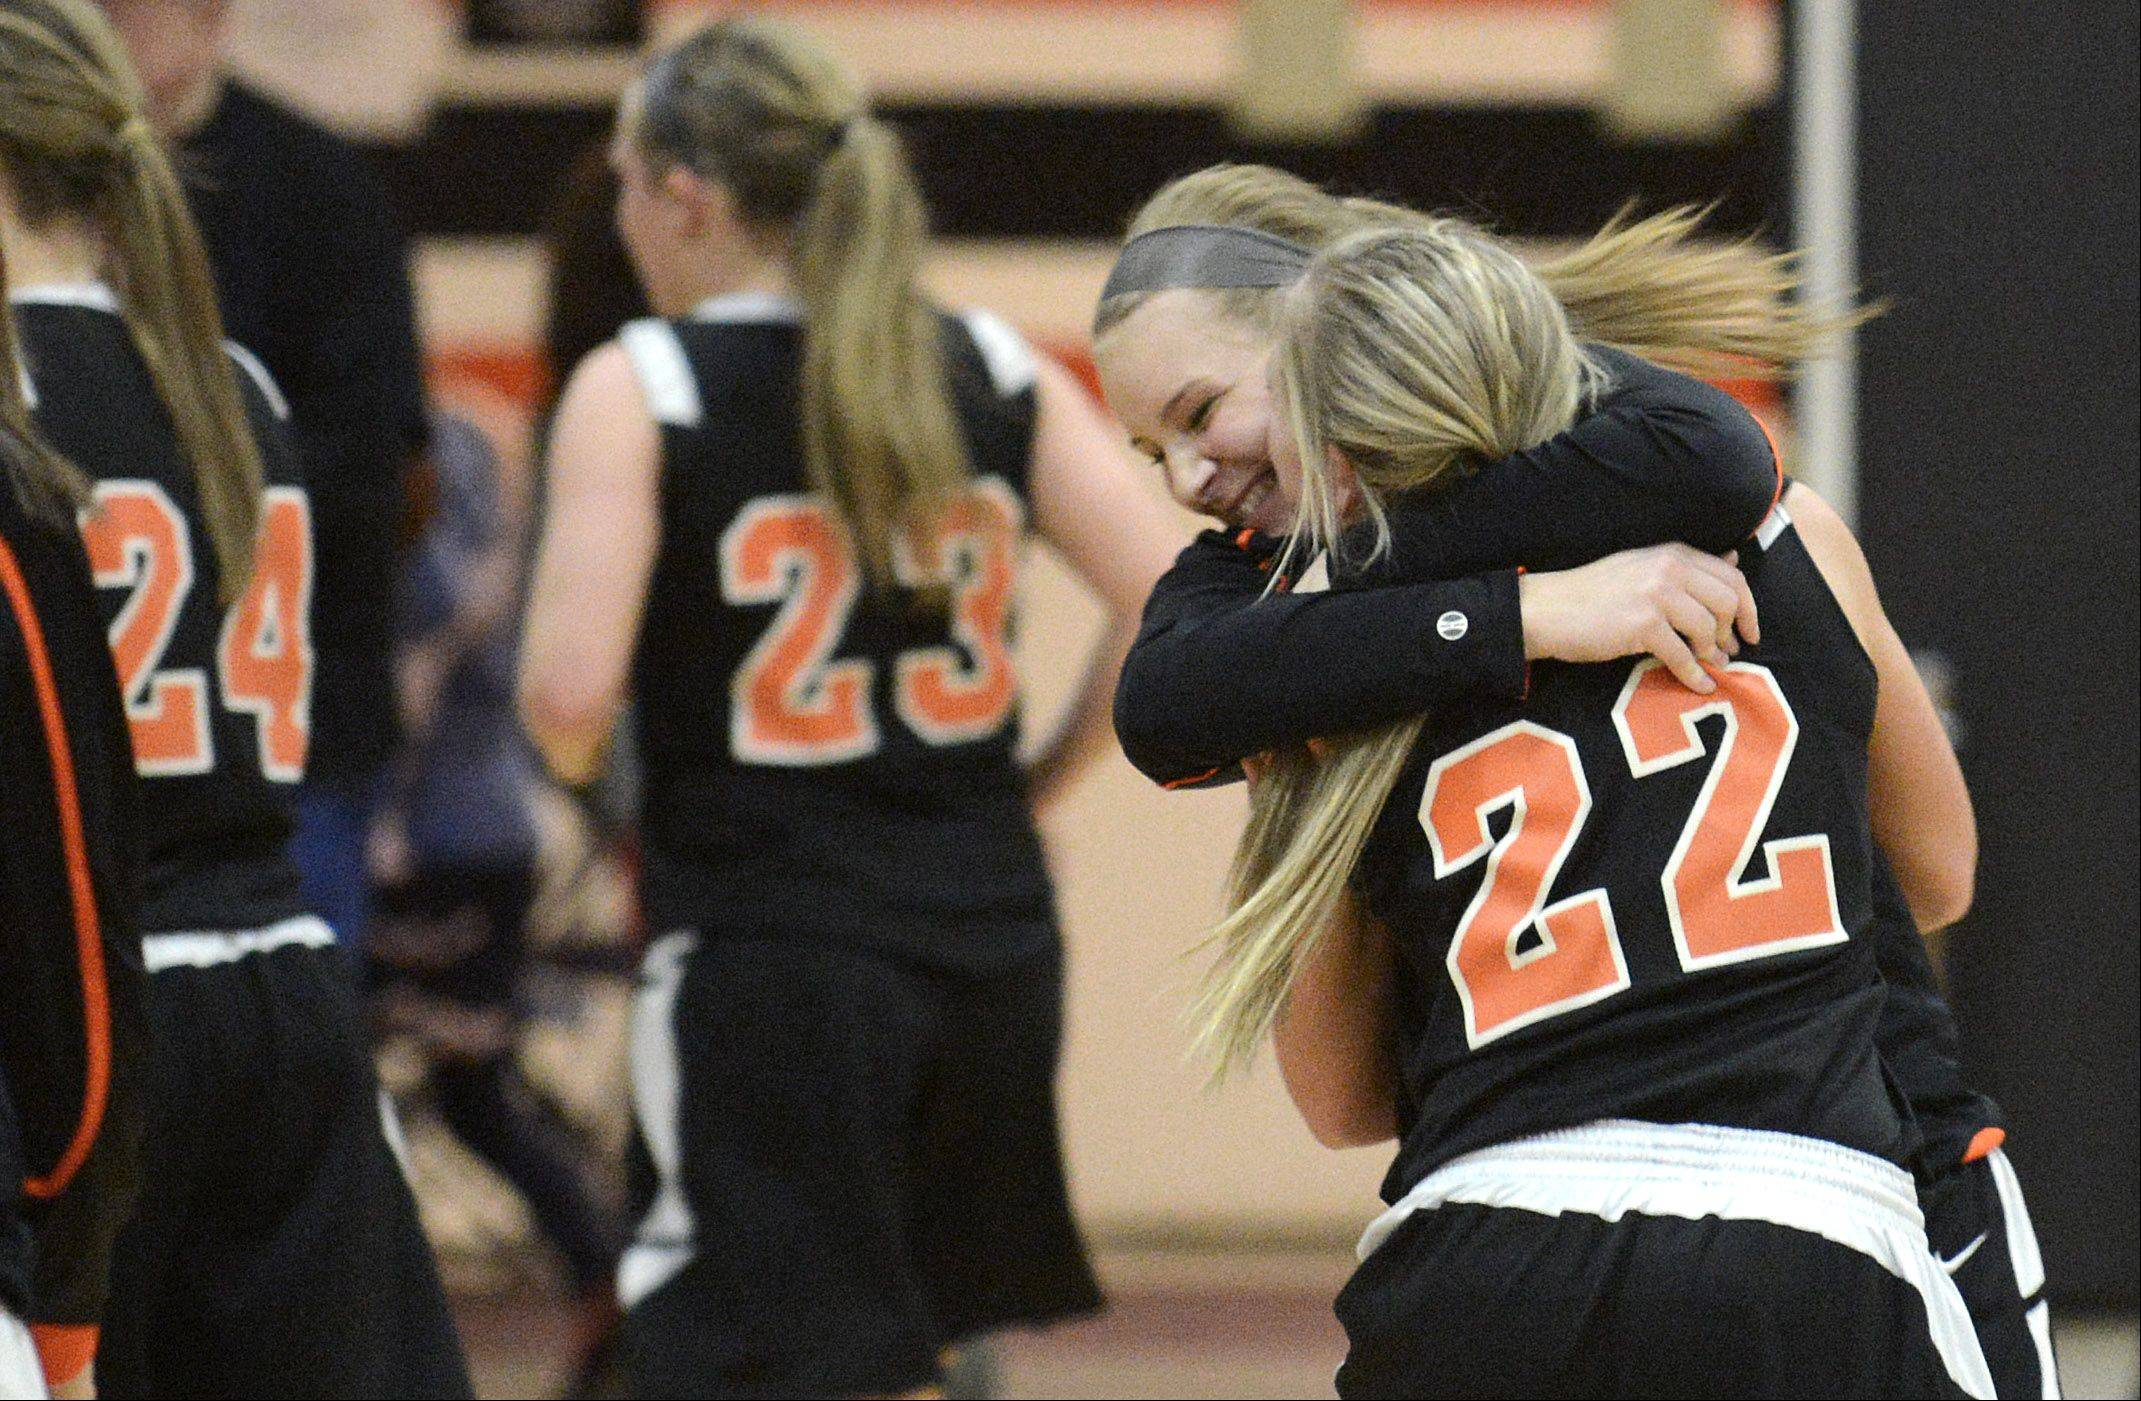 St. Charles East�s Marlena Detzel , facing, embraces teammate Anna Bartels after their win.